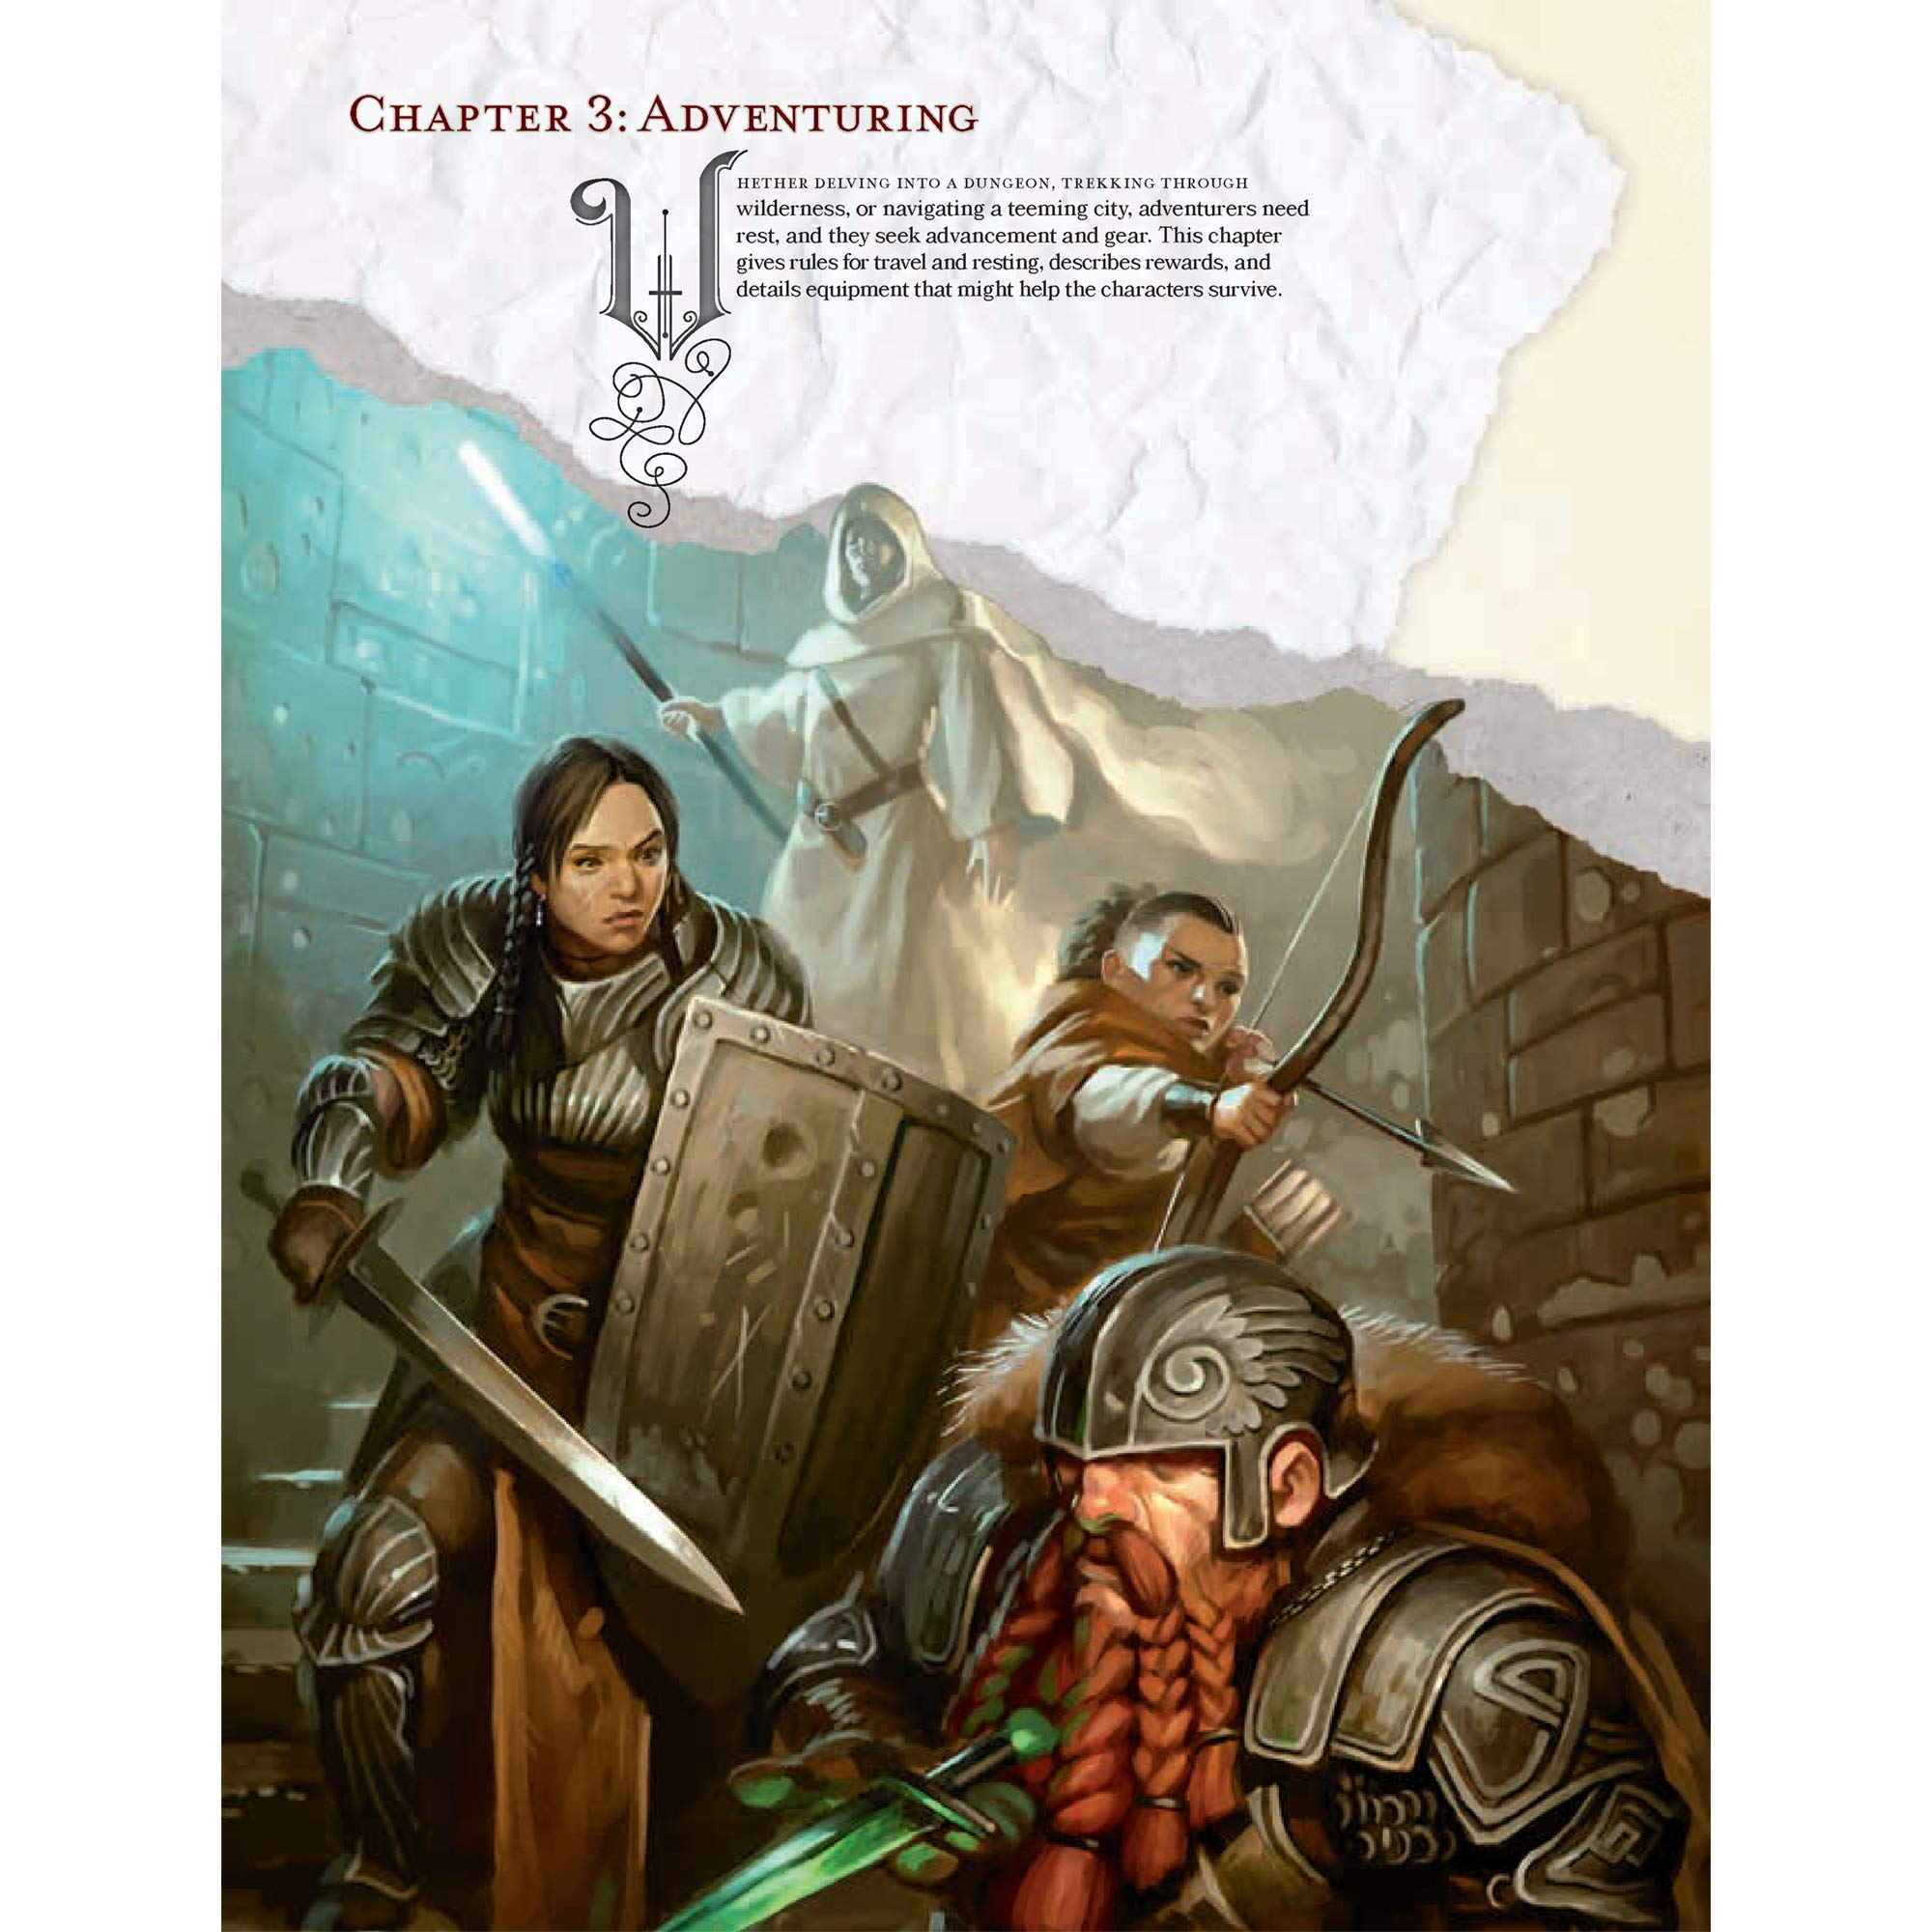 Wizards Of The Coast: Dungeons & Dragons Starter Box: Fantasy Roleplaying Game Starter Set: Amazon.es: Wizards of the: Libros en idiomas extranjeros